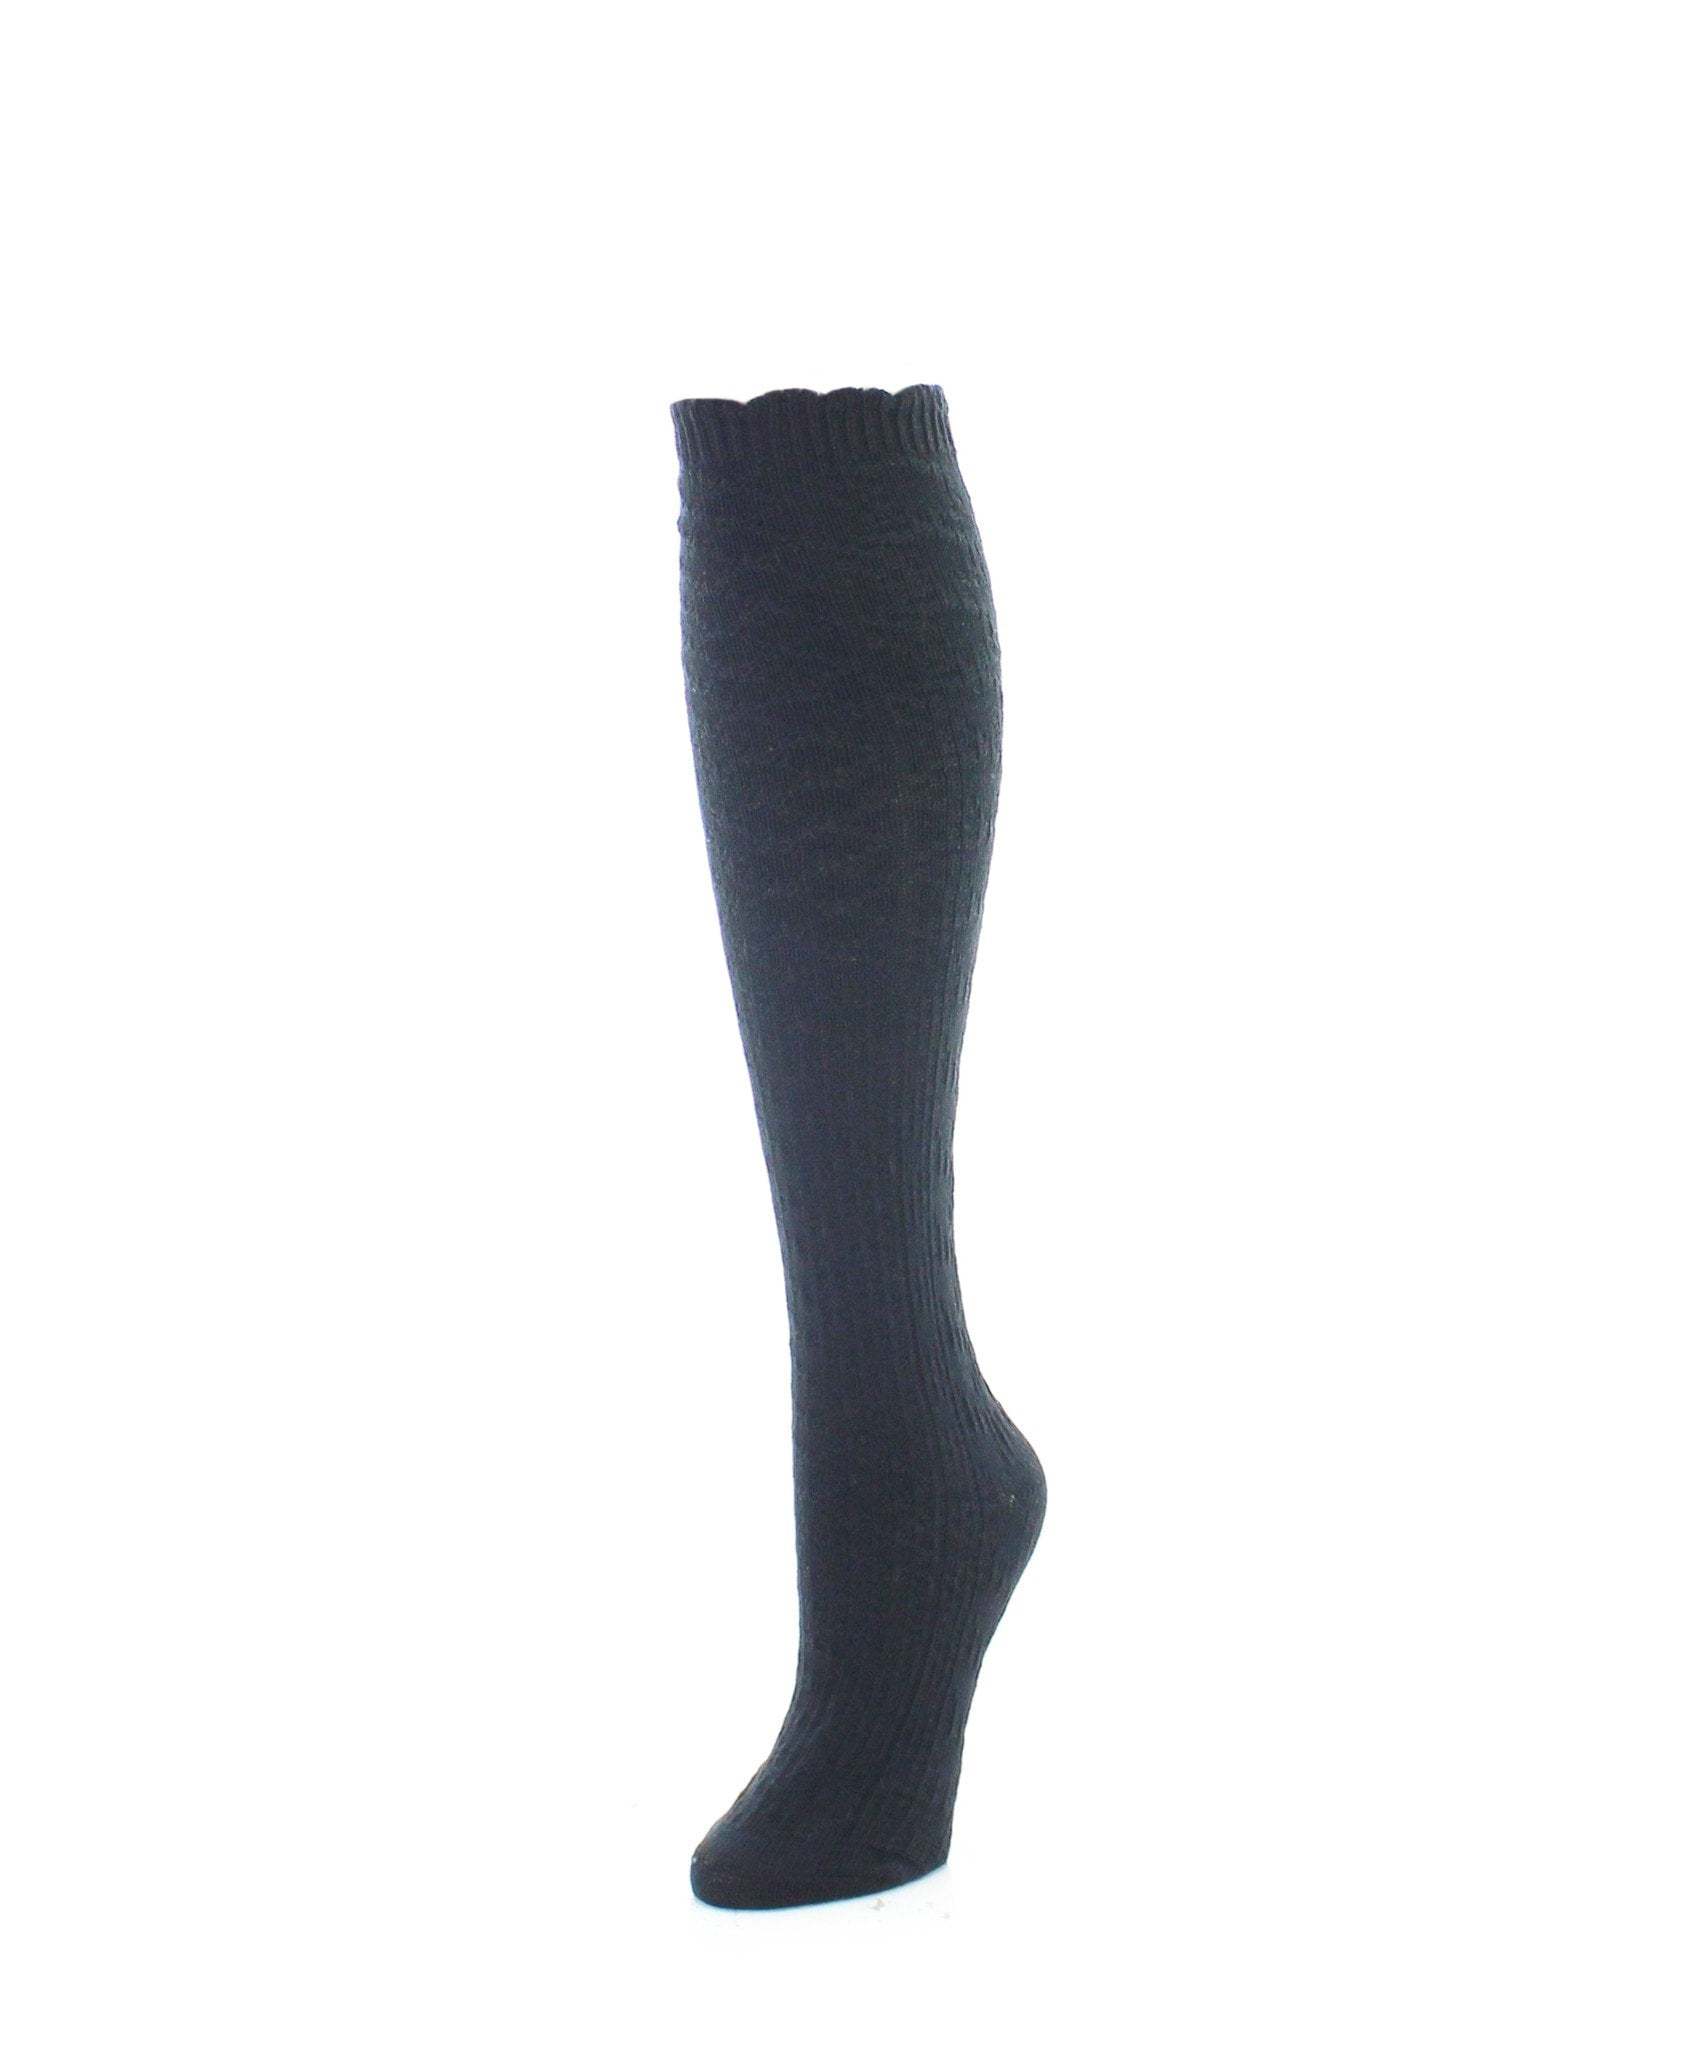 Knee High Socks | Women's Socks | Diamond Ridged - MeMoi - 1